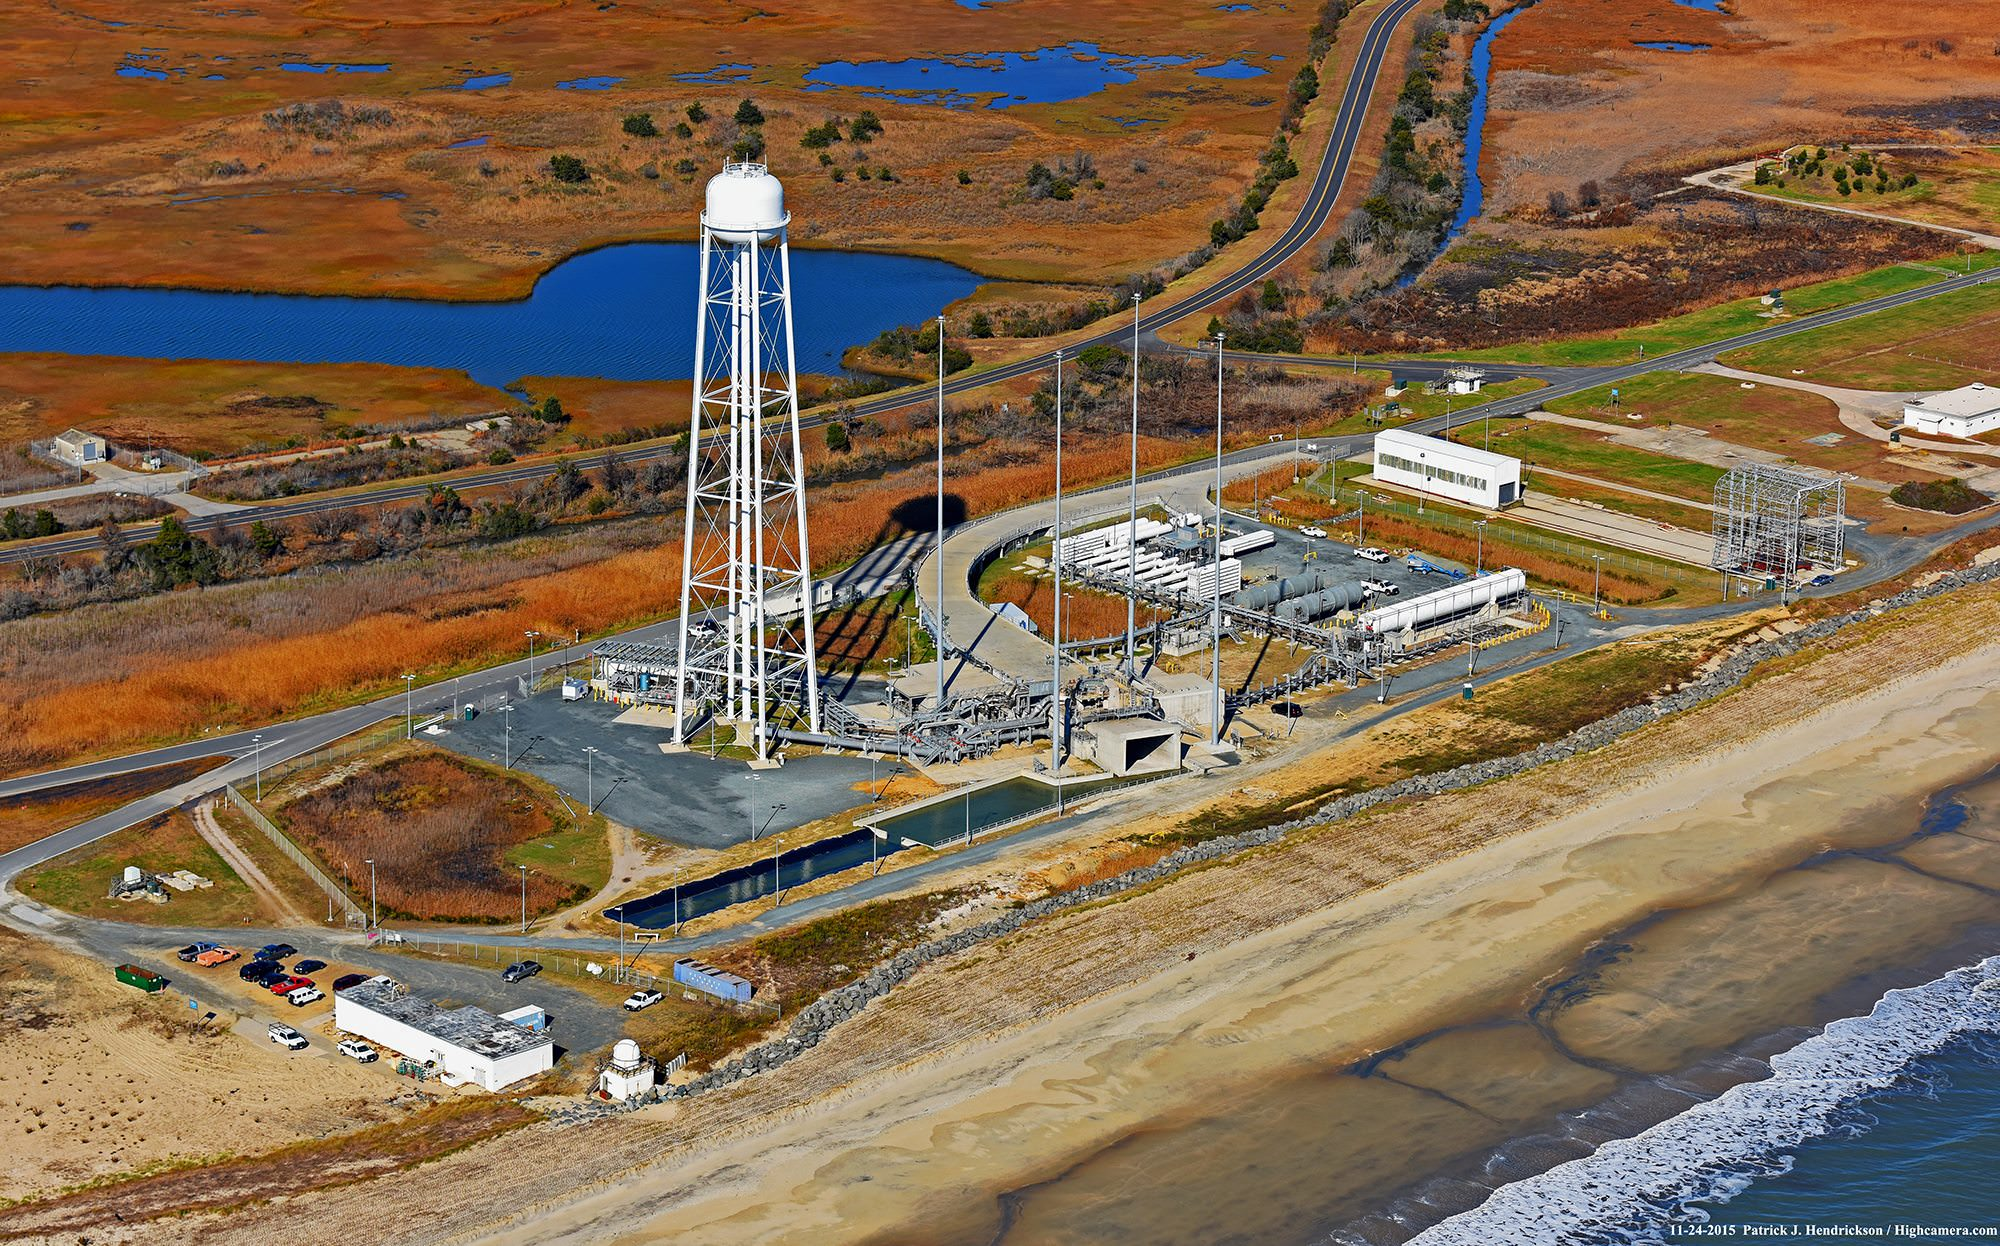 Aerial view of Orbital ATK launch pad at Virginia Space's Mid-Atlantic Regional Spaceport (MARS) Pad 0A located at NASA's Wallops Flight Facility.  Credit: Credit: Patrick J. Hendrickson / Highcamera.com